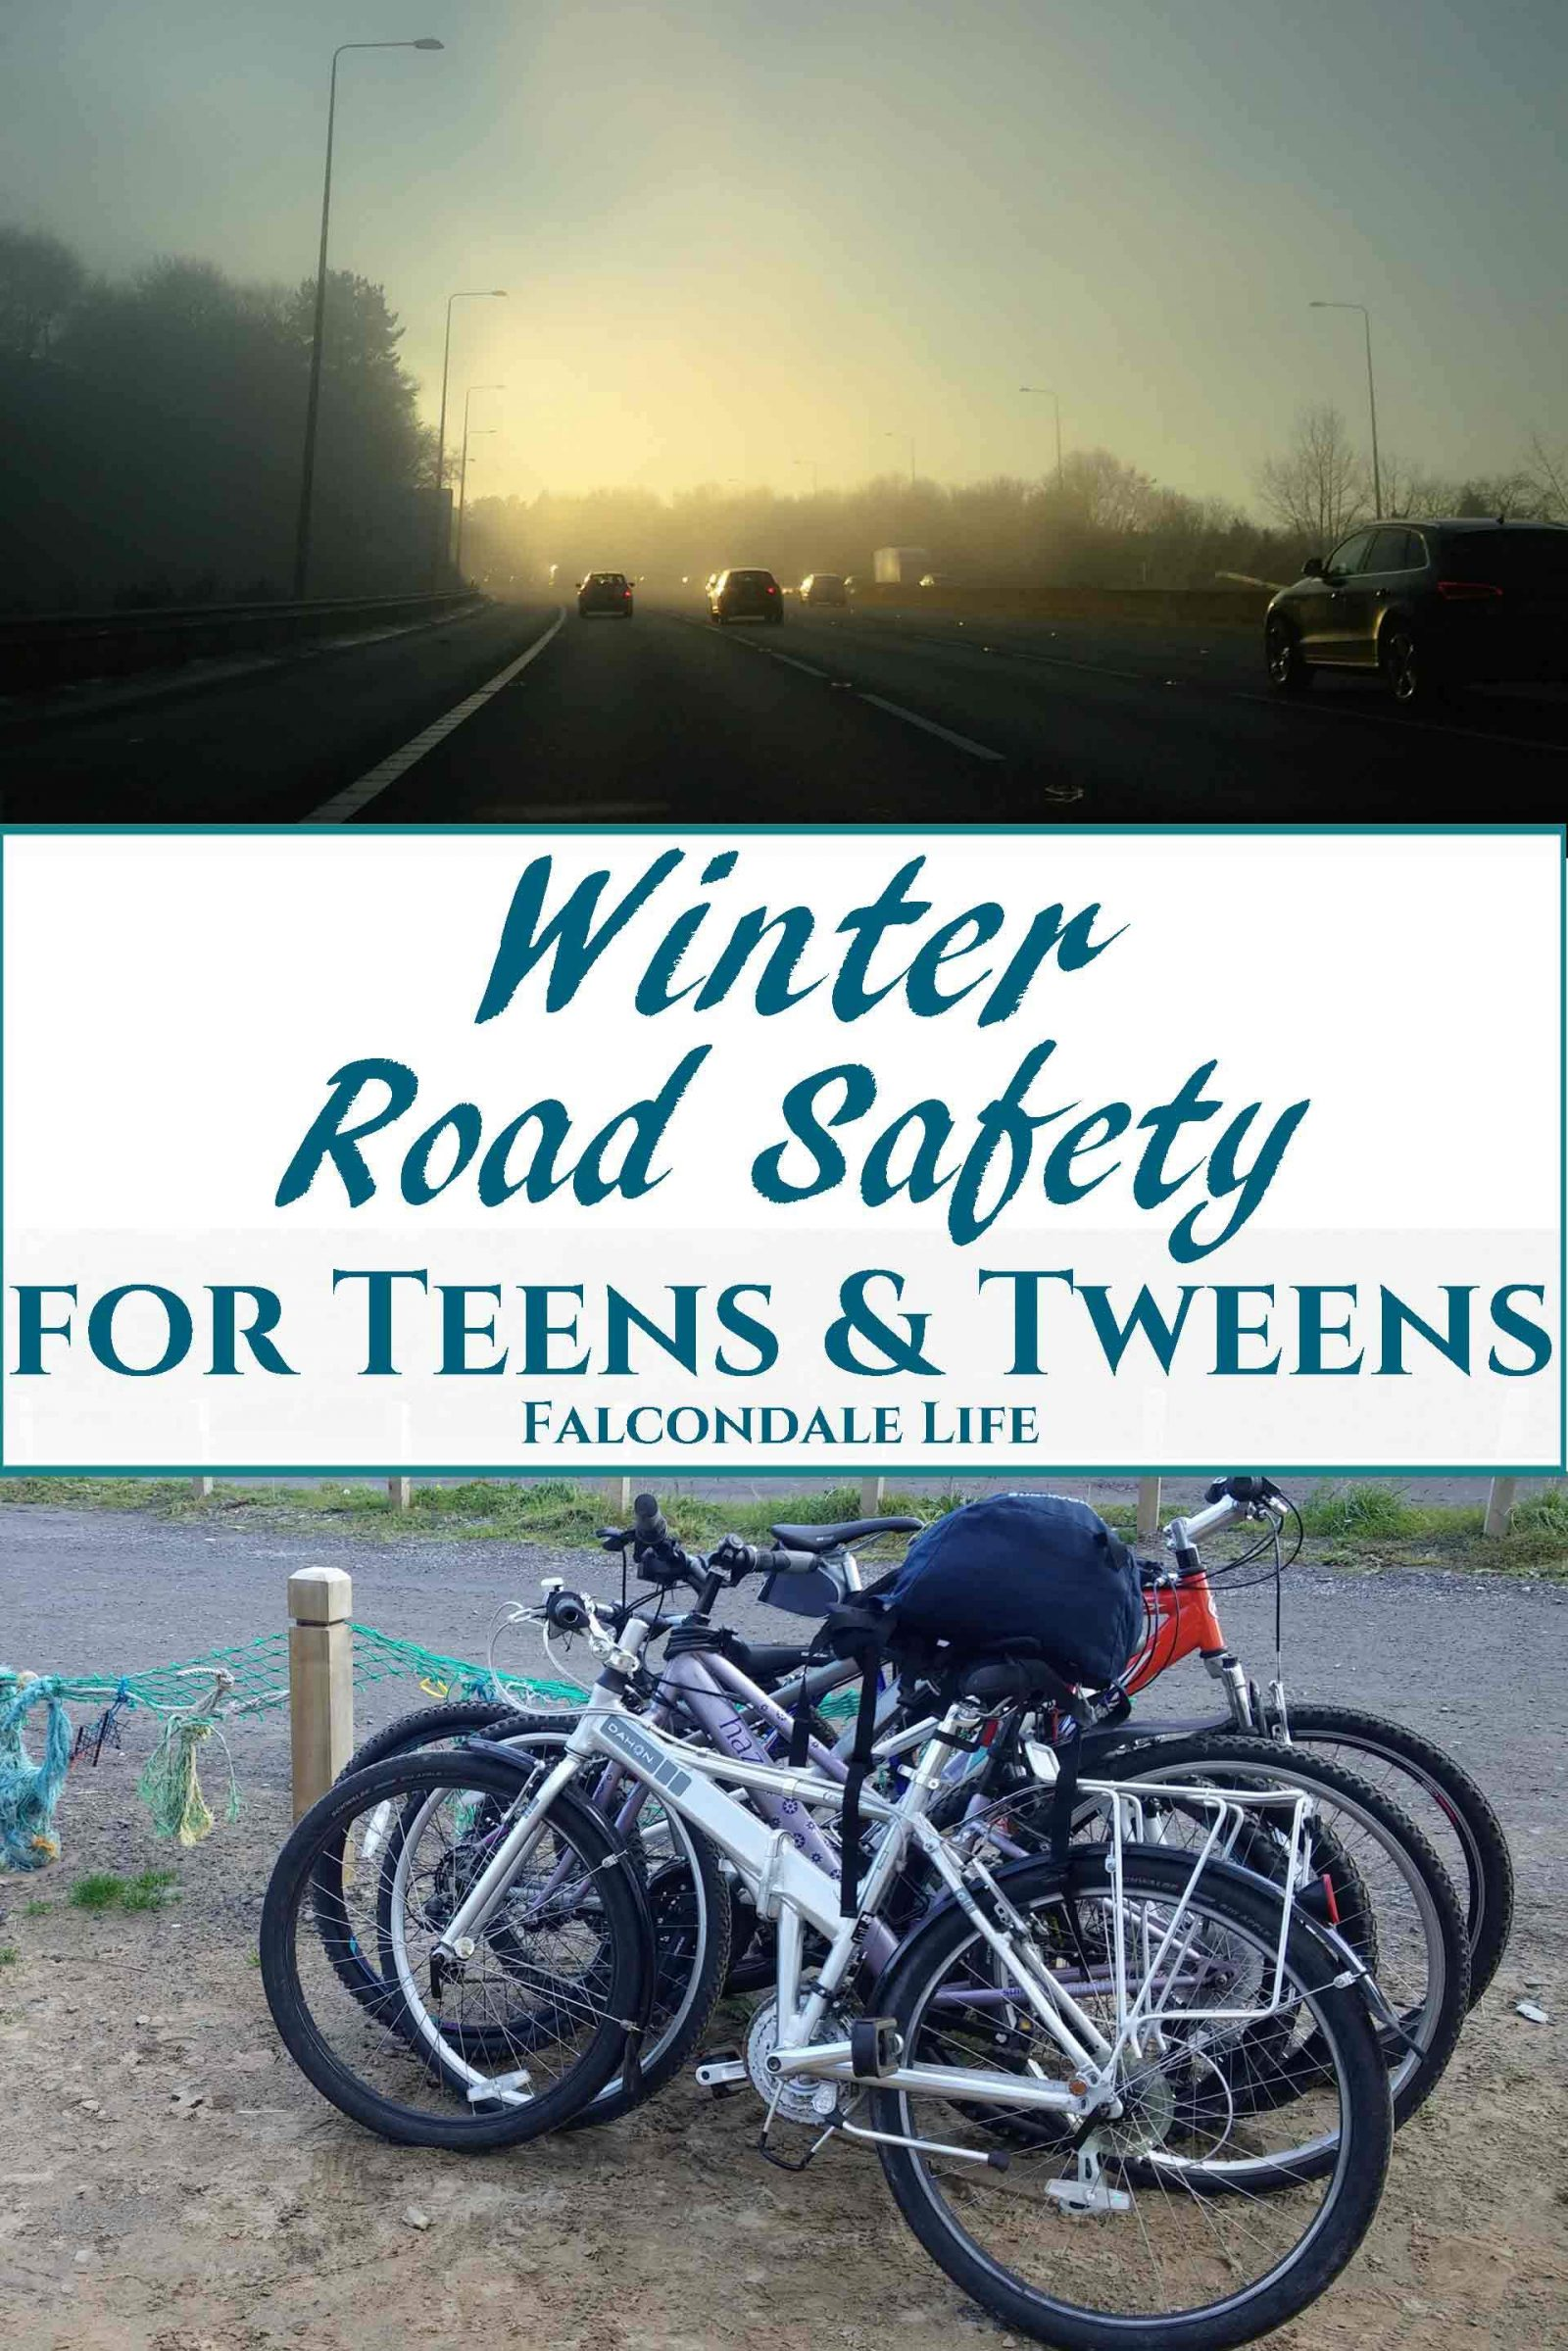 Winter Road Safety for Tween and Teenage Children on Falcondale Life blog. What advice do I give my tween and teenage children about winter road safety? Useful tips for them as pedestrians, cyclists and car passengers. Winter motorway driving, mist and glare. Cycle safety and car passengers.